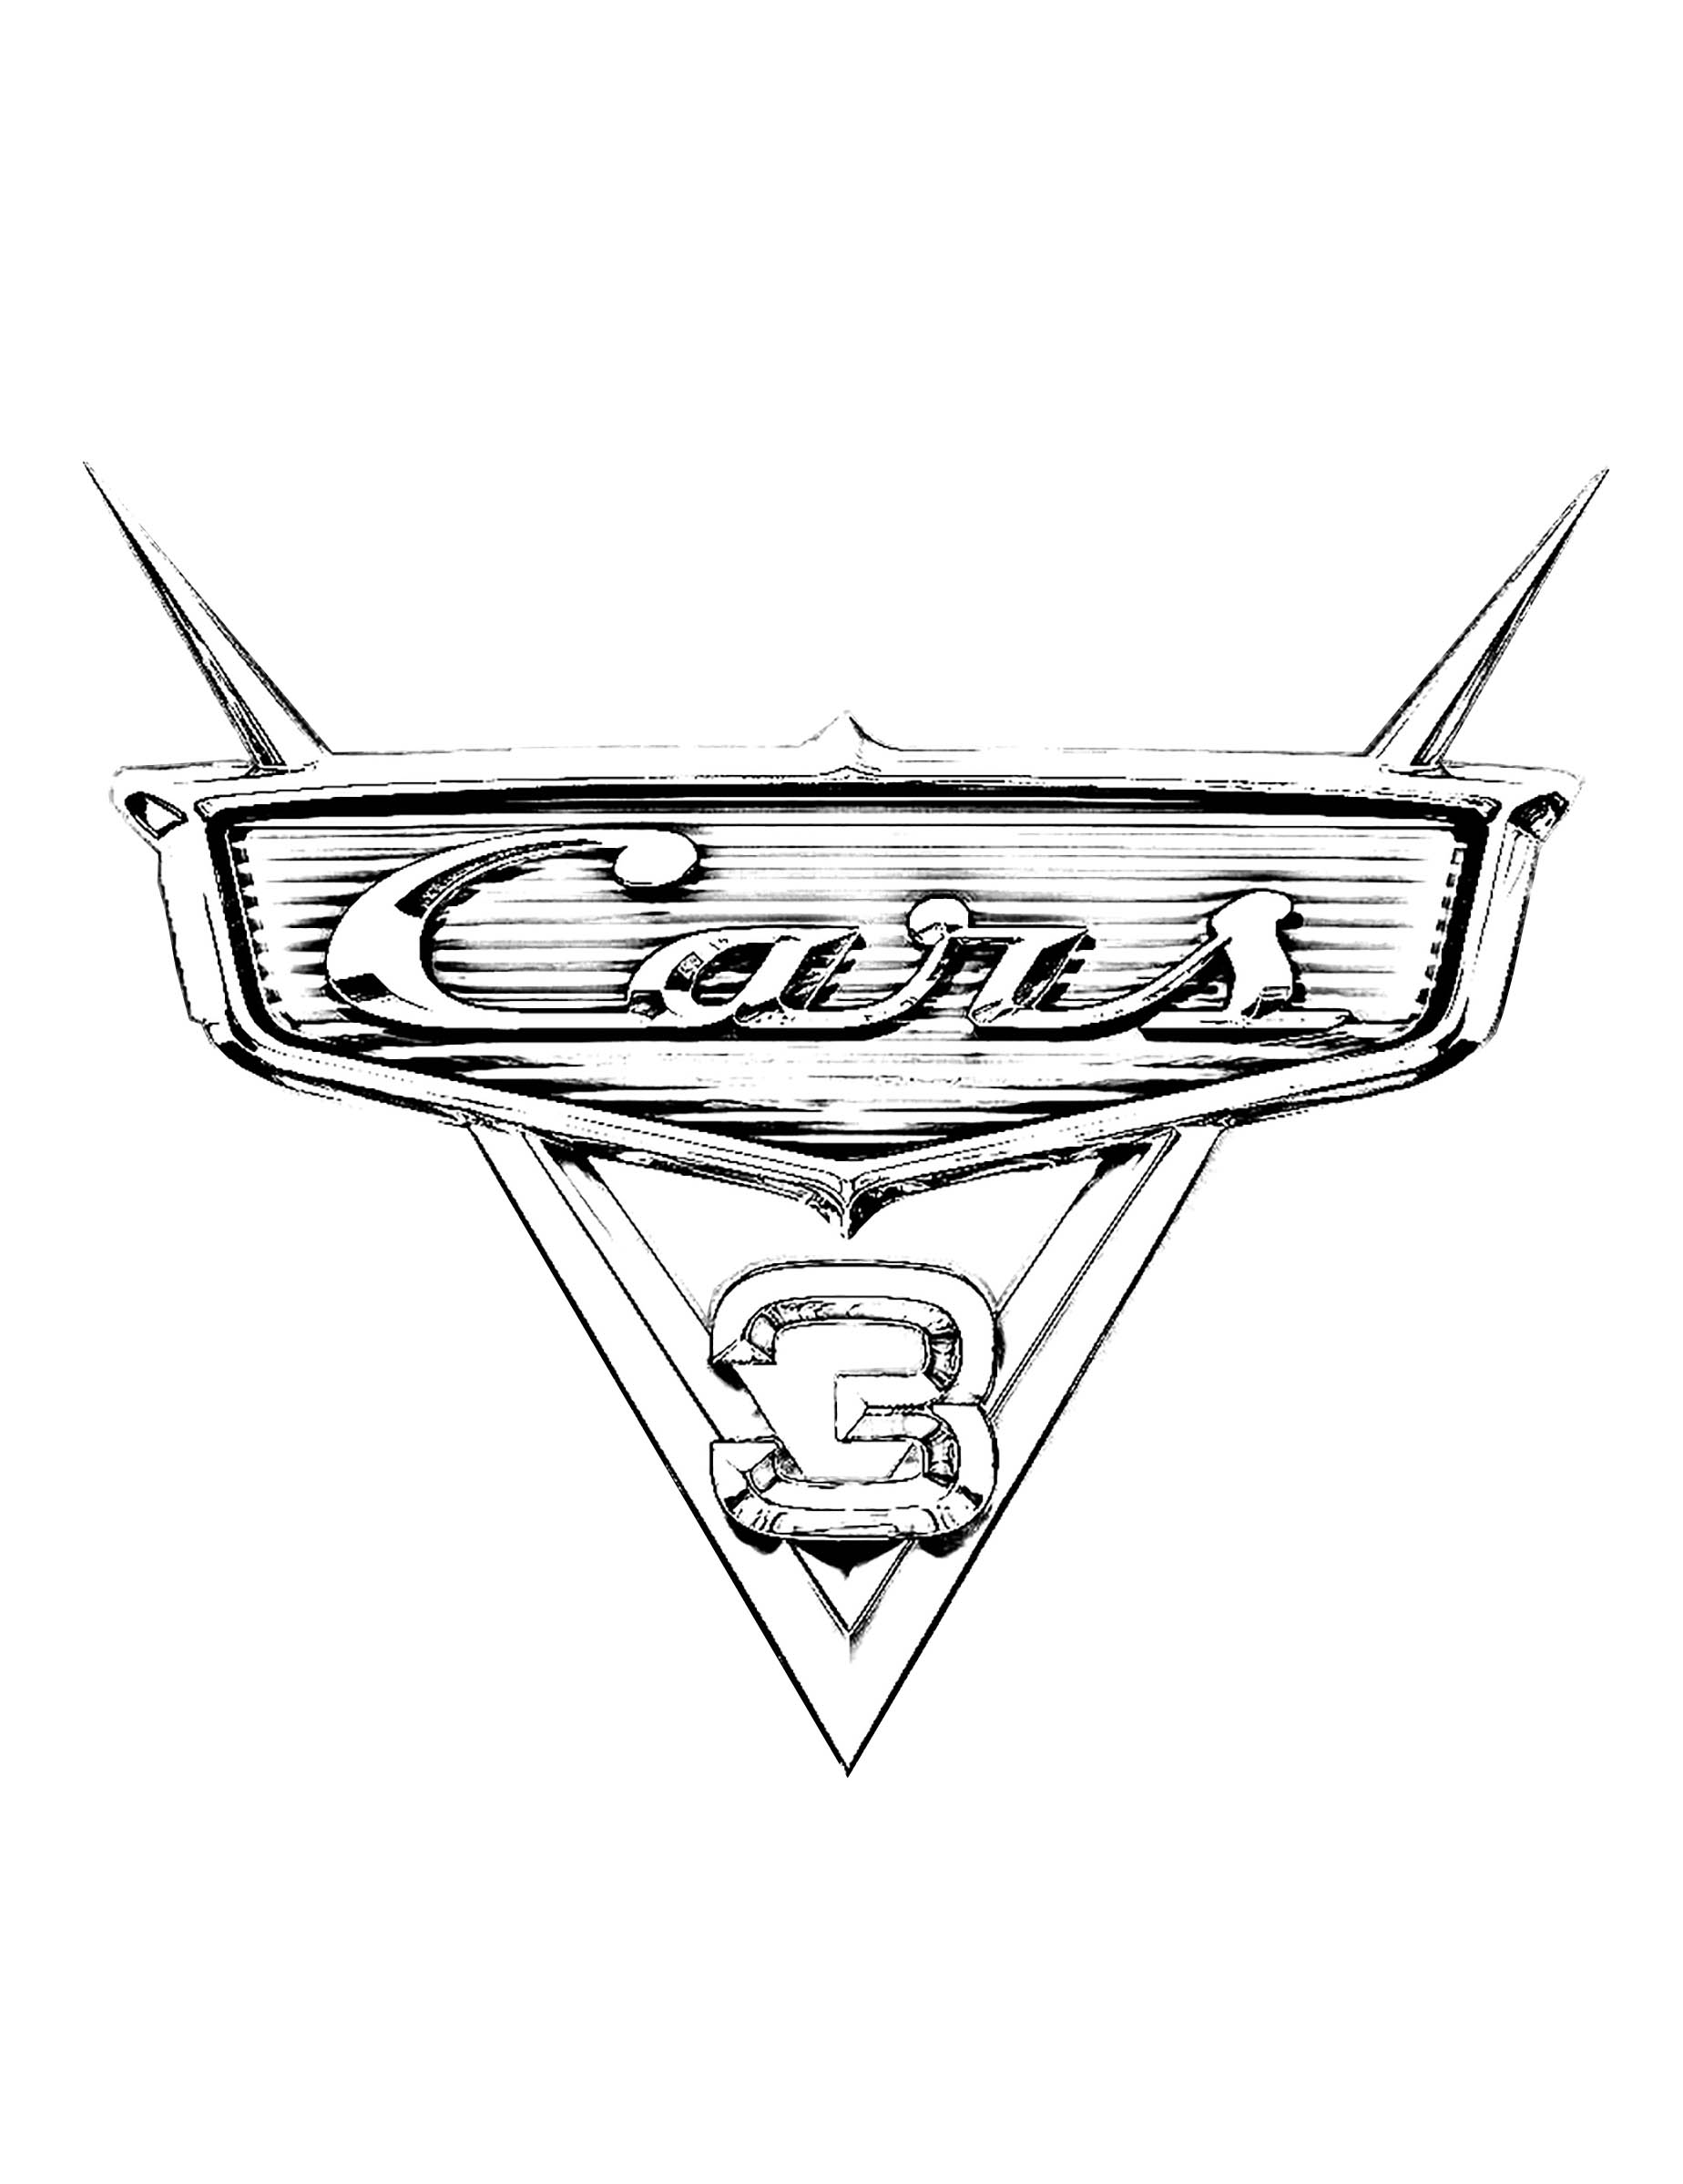 Unique dessin a imprimer cars 3 - Image a colorier cars 2 ...